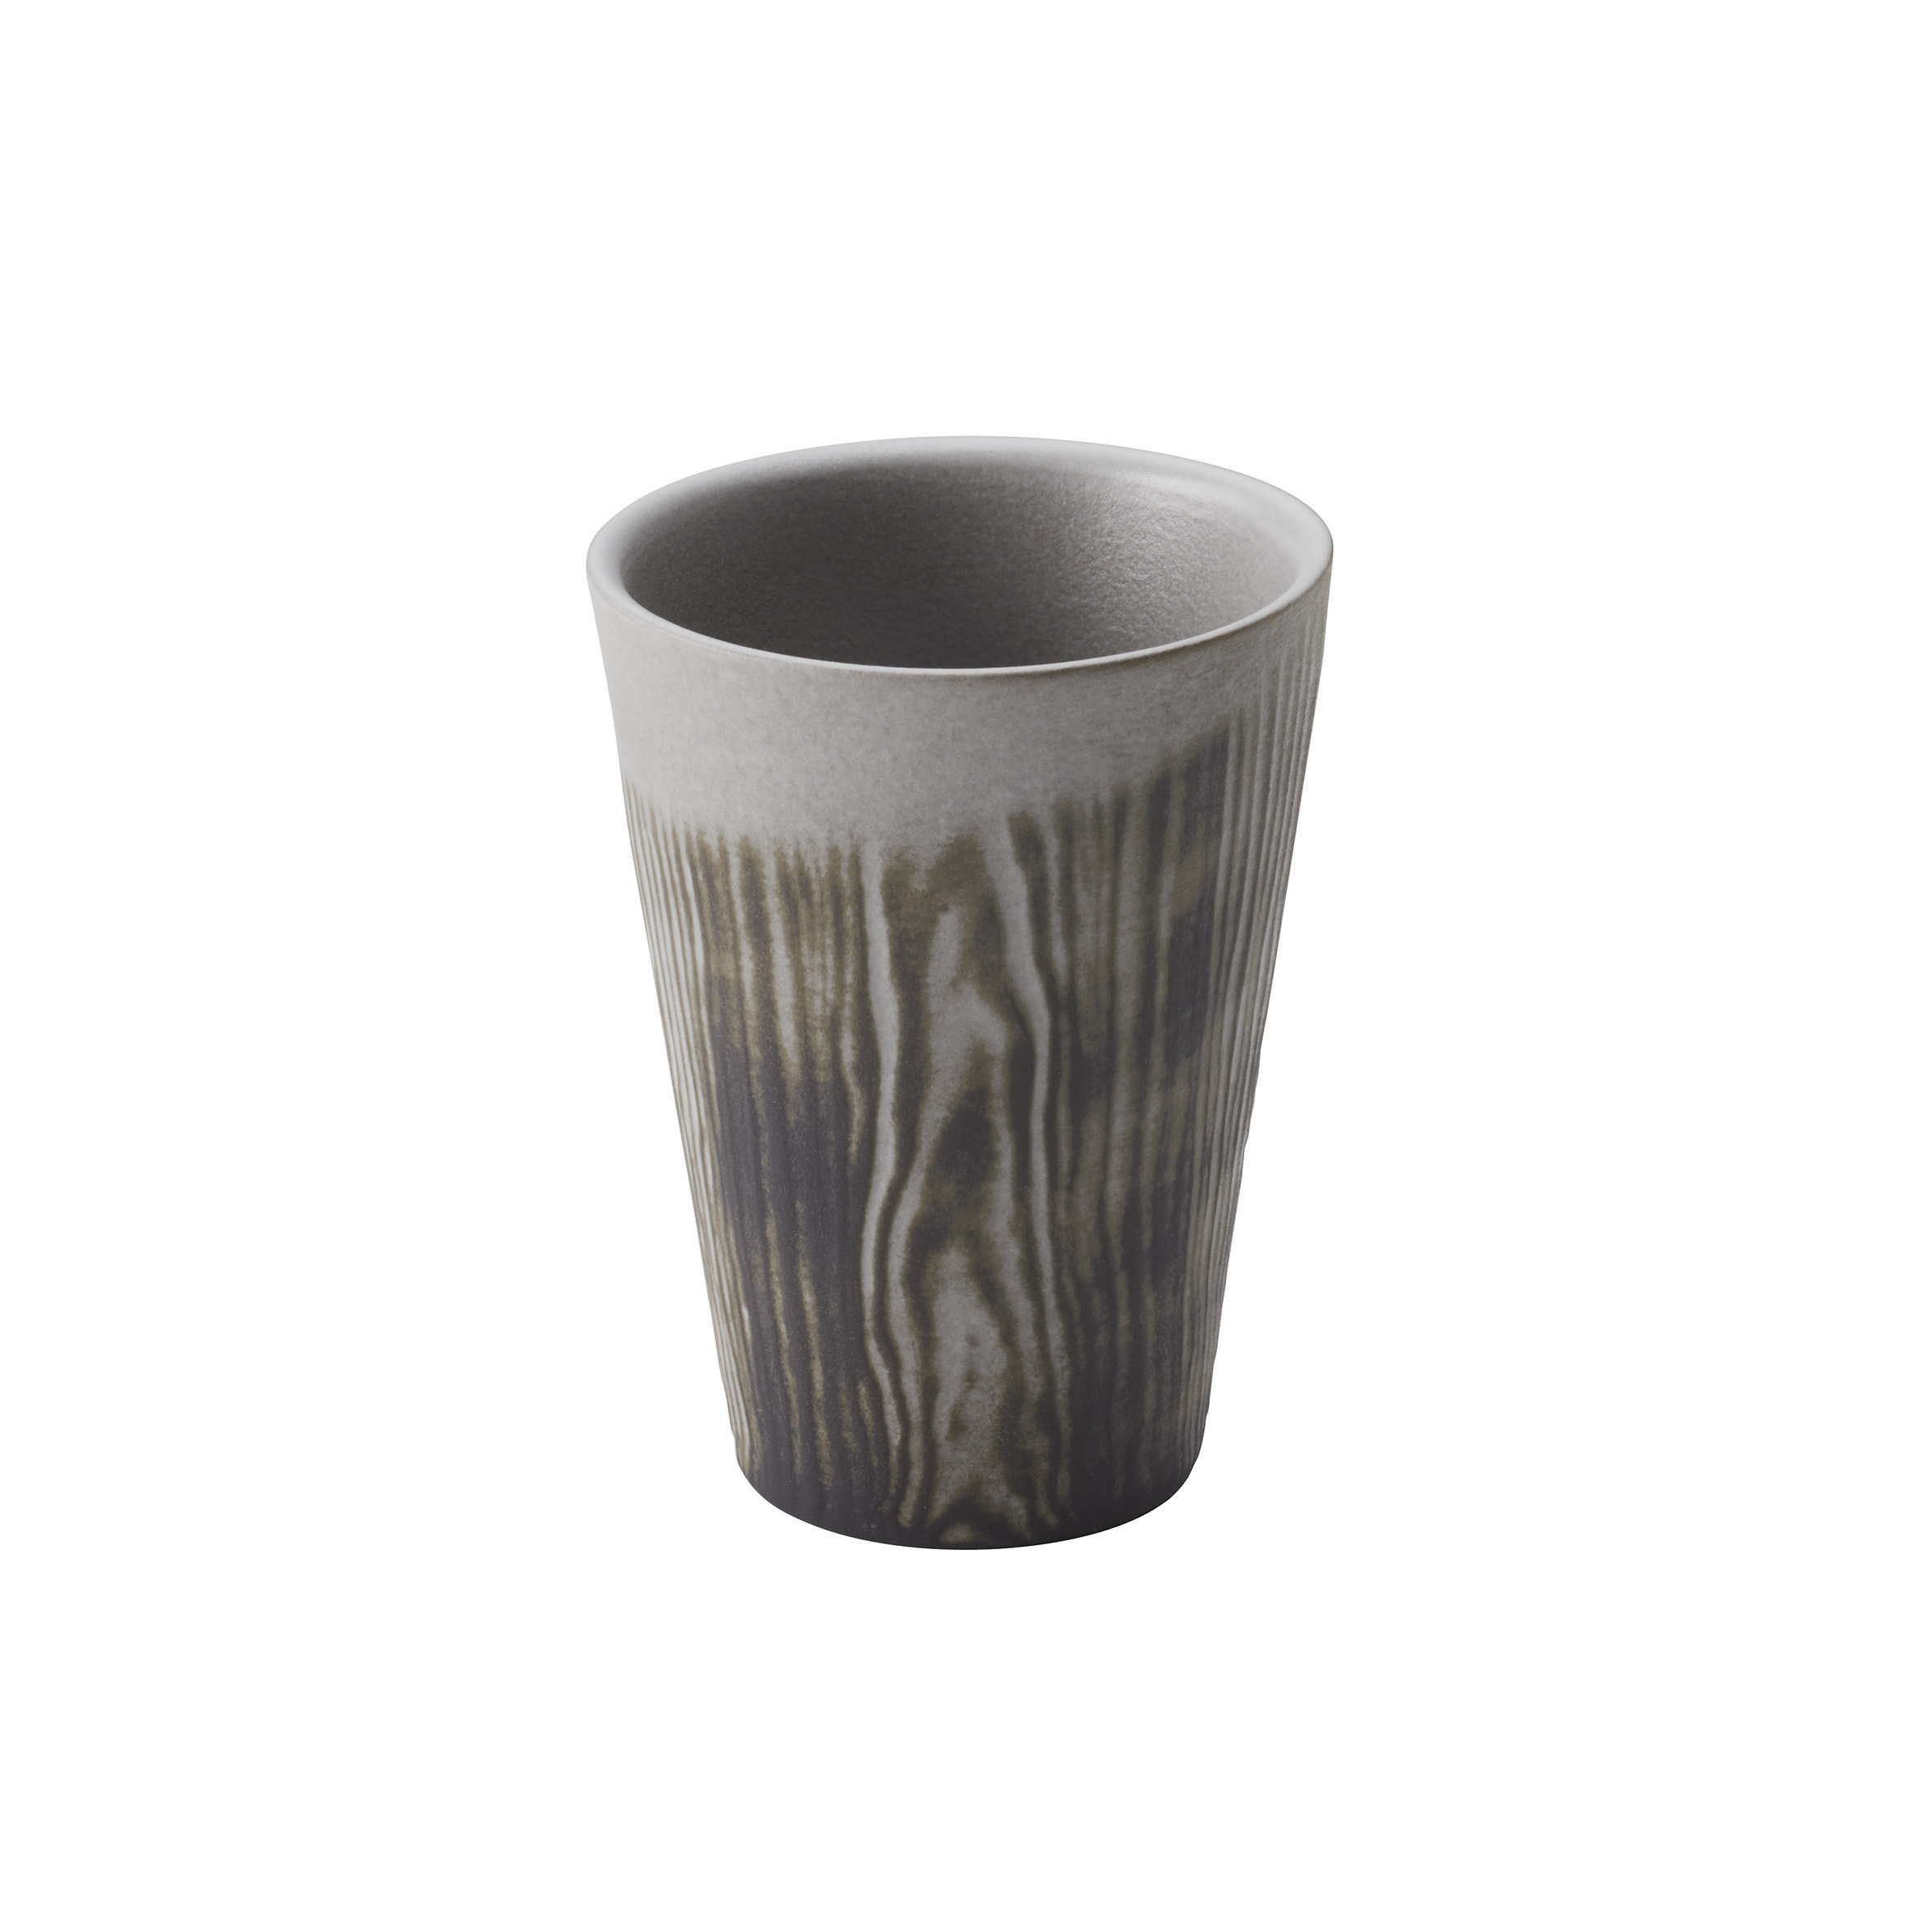 Kubek do espresso porcelanowy REVOL ARBORESCENCE SZARY 80 ml